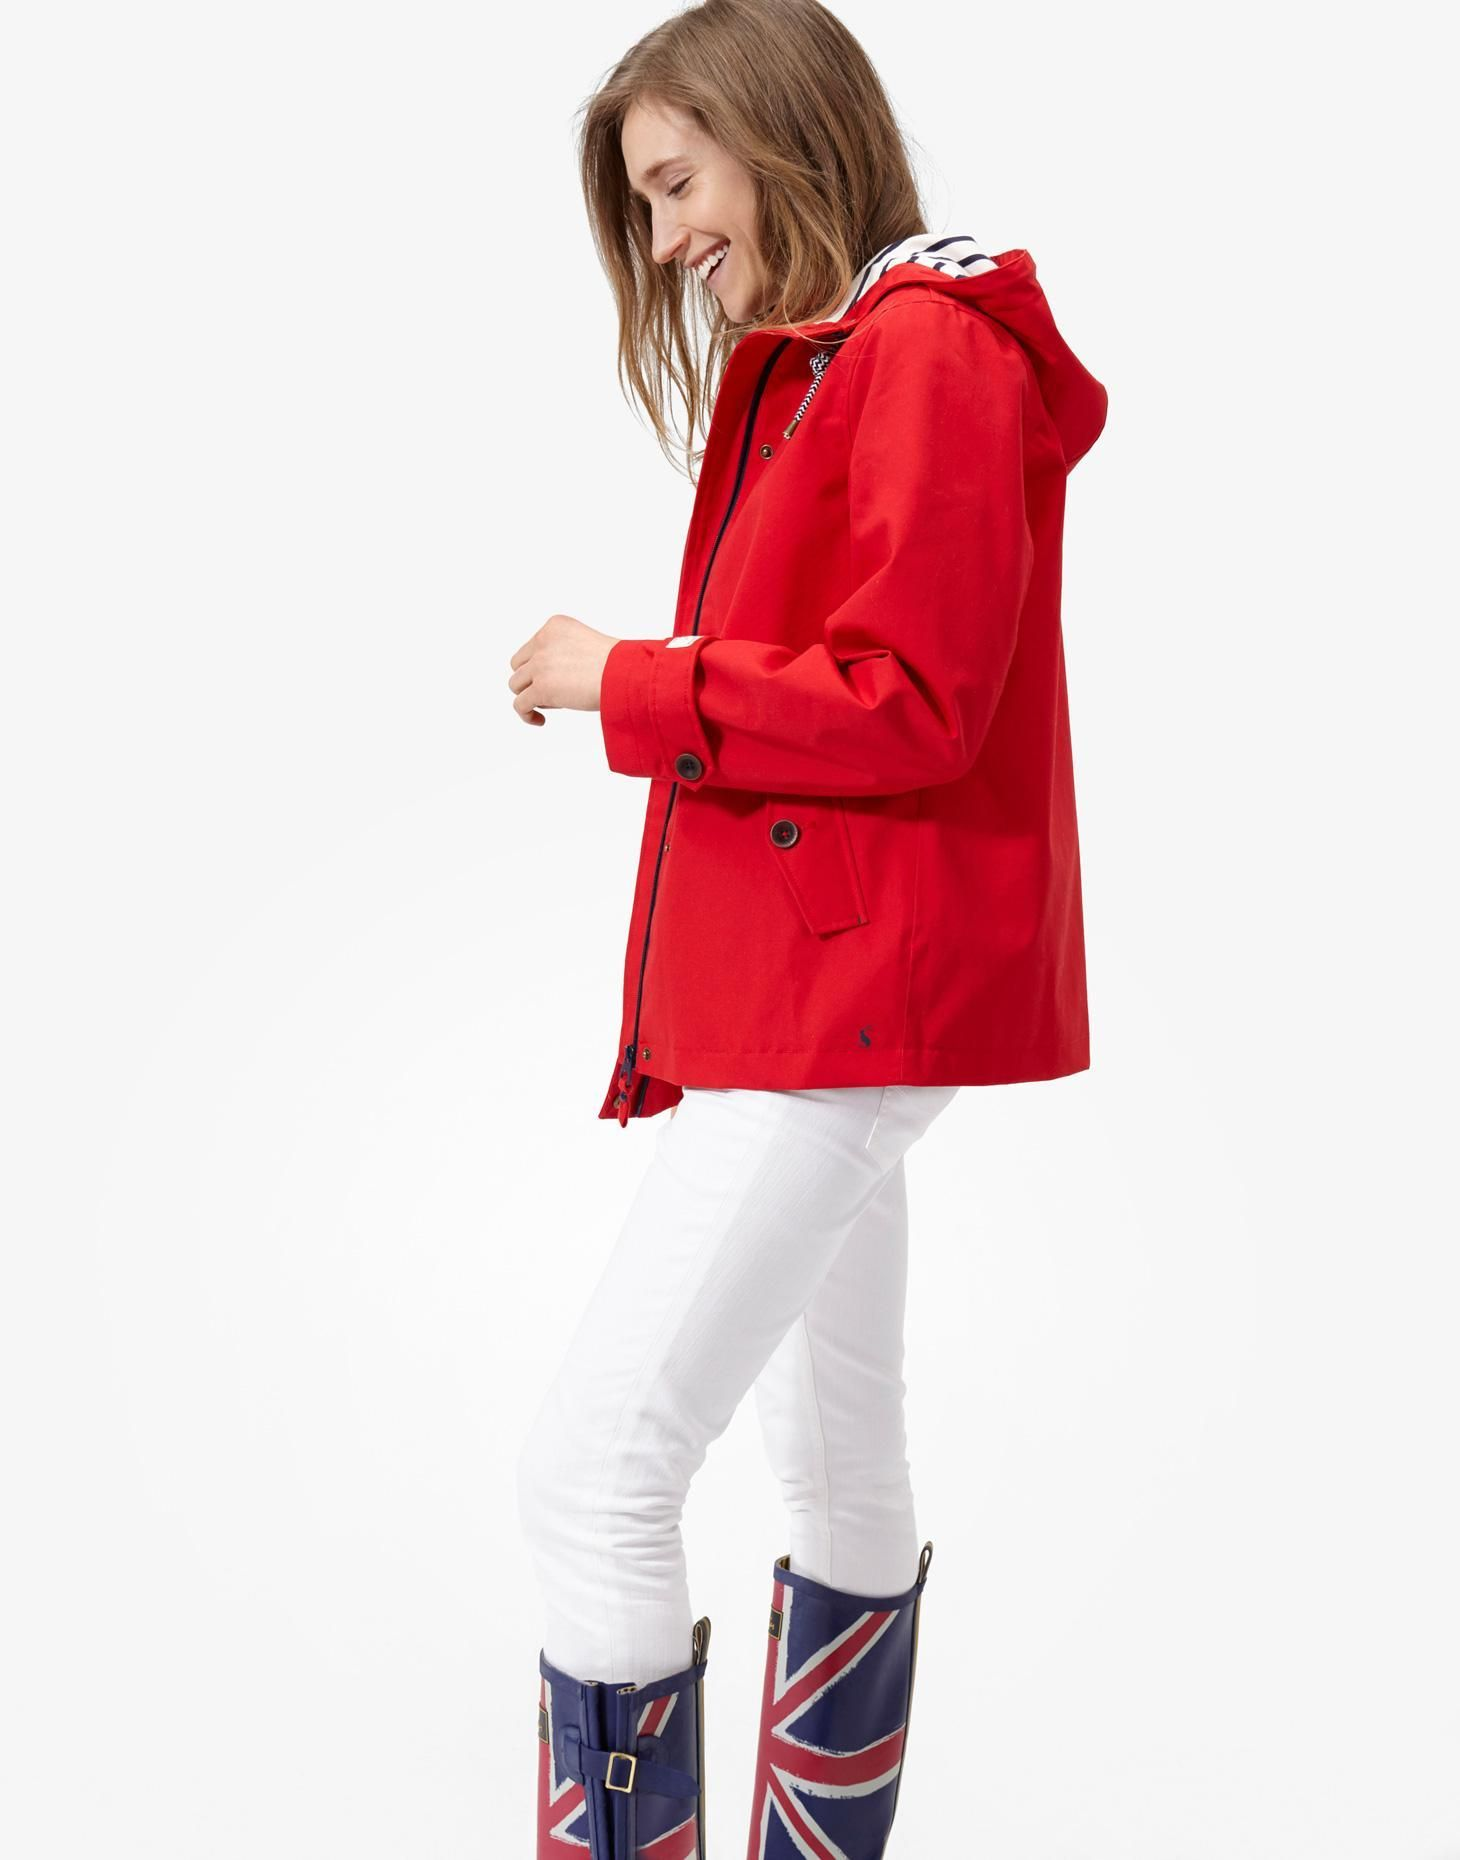 Coast Red Waterproof Hooded Jacket , Size US 6 | Joules US ...